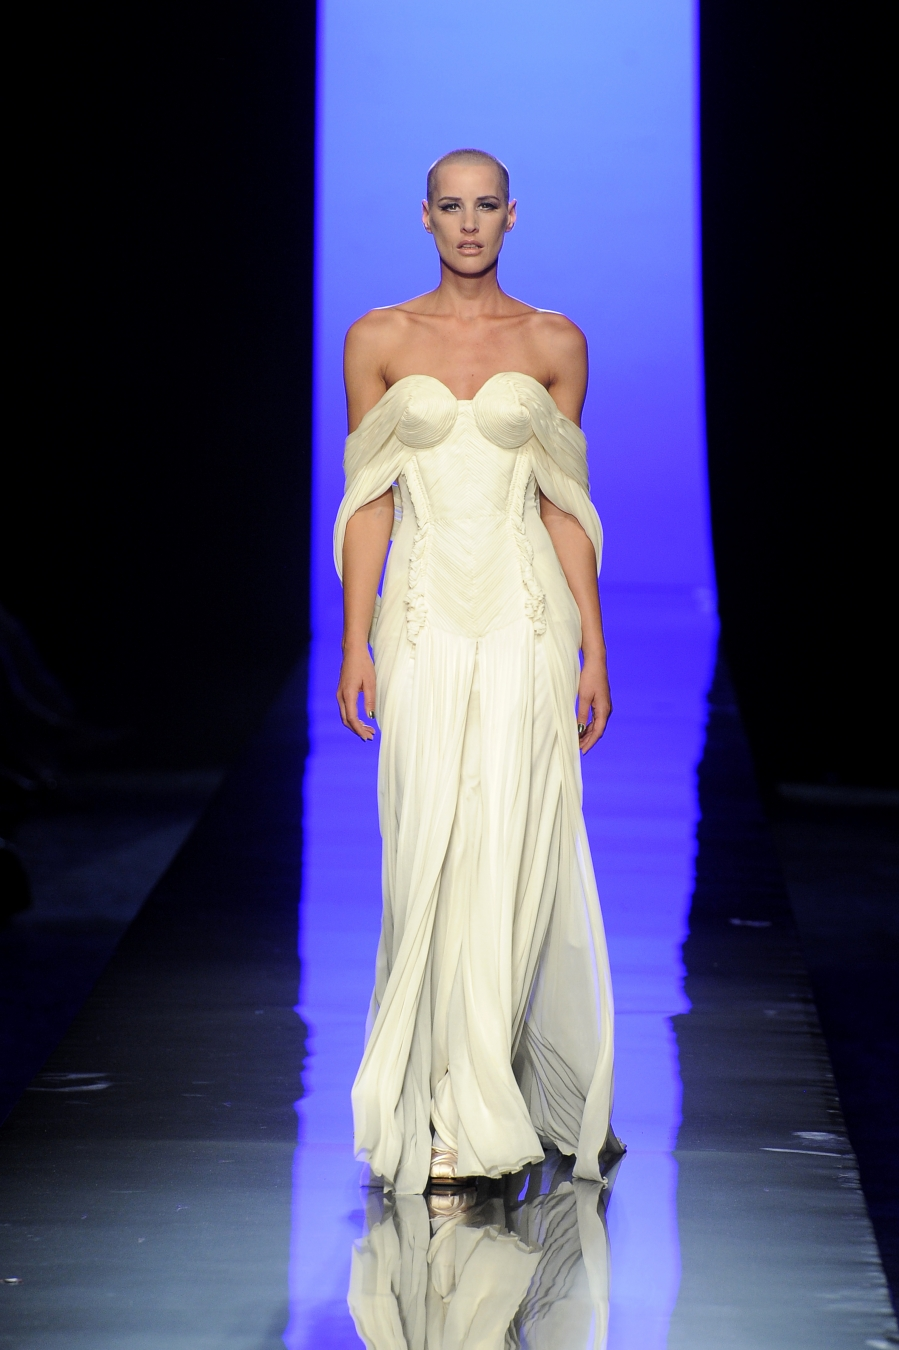 """379663bea08 Jean Paul Gaultier (born in 1952), Ashes to Ashes collection, '""""La Mariée""""  gown, haute couture fall/winter 2013-2014. Photo © Patrice Stable/Jean Paul  ..."""